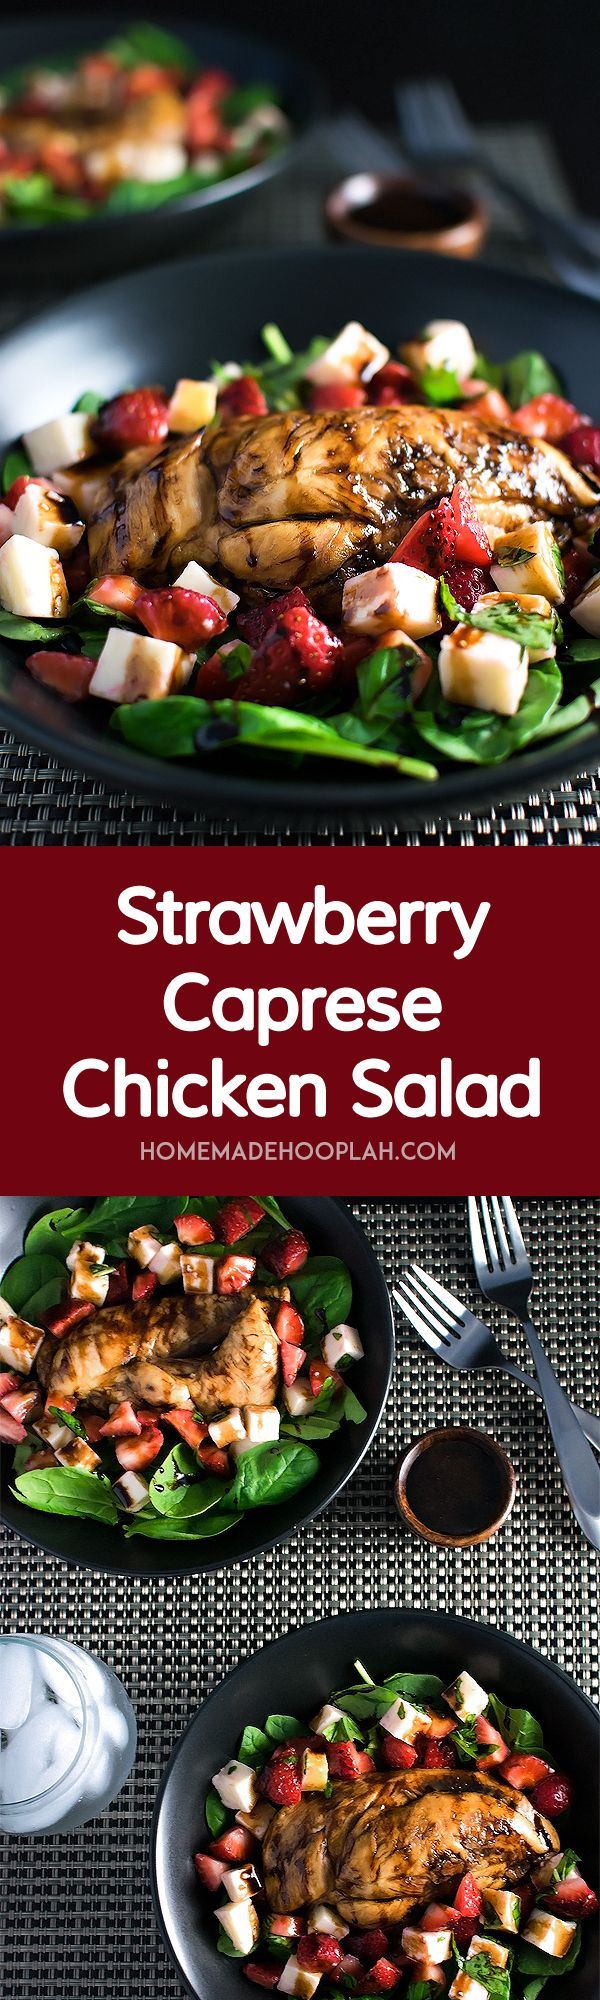 Strawberry Caprese Chicken Salad! Take a spring twist on a restaurant quality caprese salad with strawberries, mozzarella, and balsamic chicken. | HomemadeHooplah.com